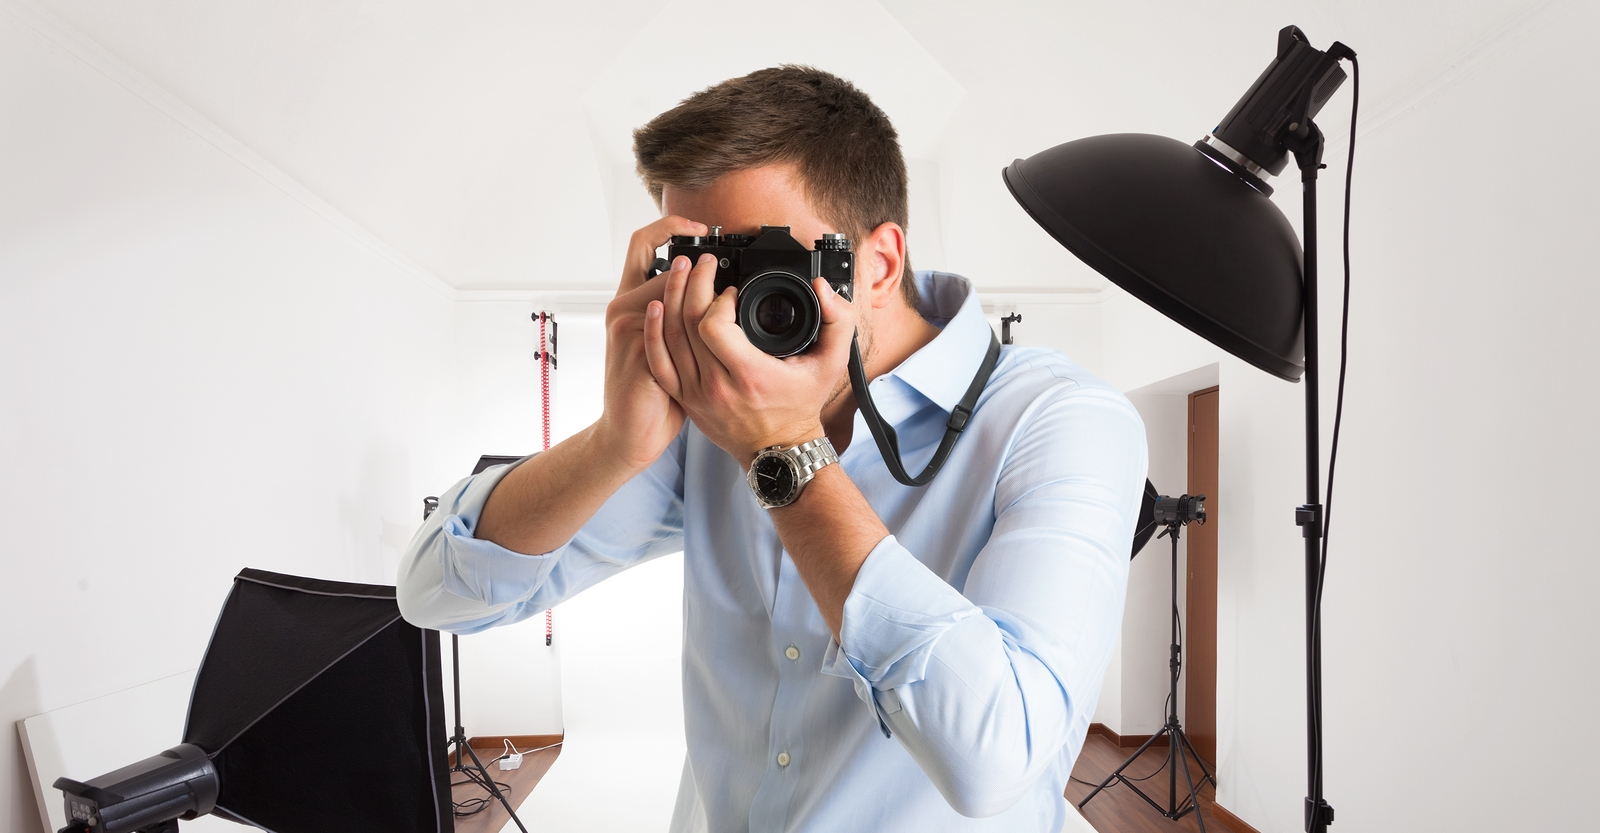 6 Vital Tips For Starting A Professional Photography Business